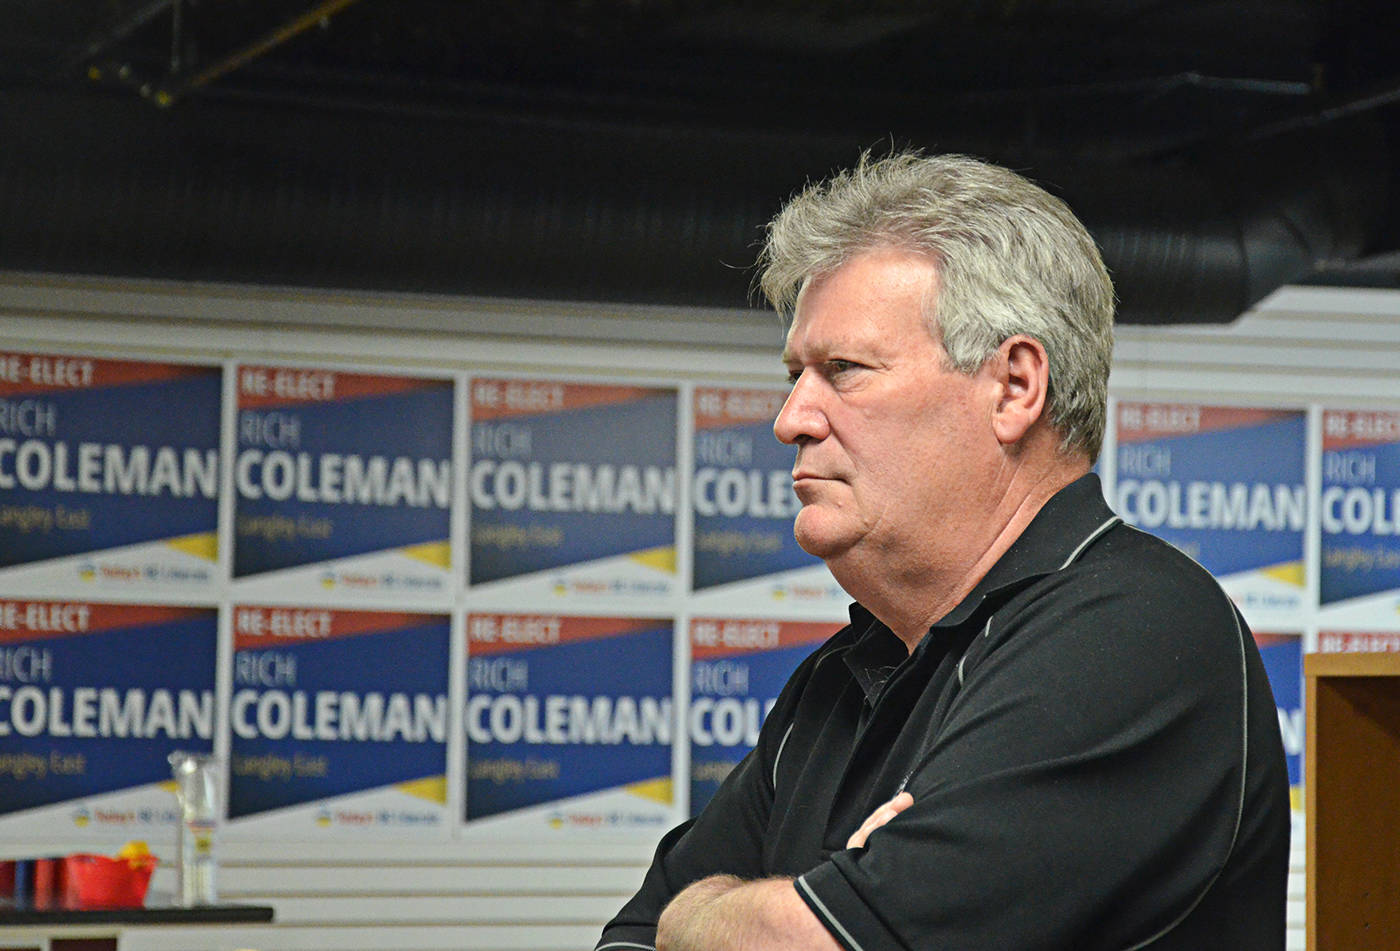 Rich Coleman, Langley East MLA, watched the results come in on May 9 during the provincial vote. (Langley Advance files)